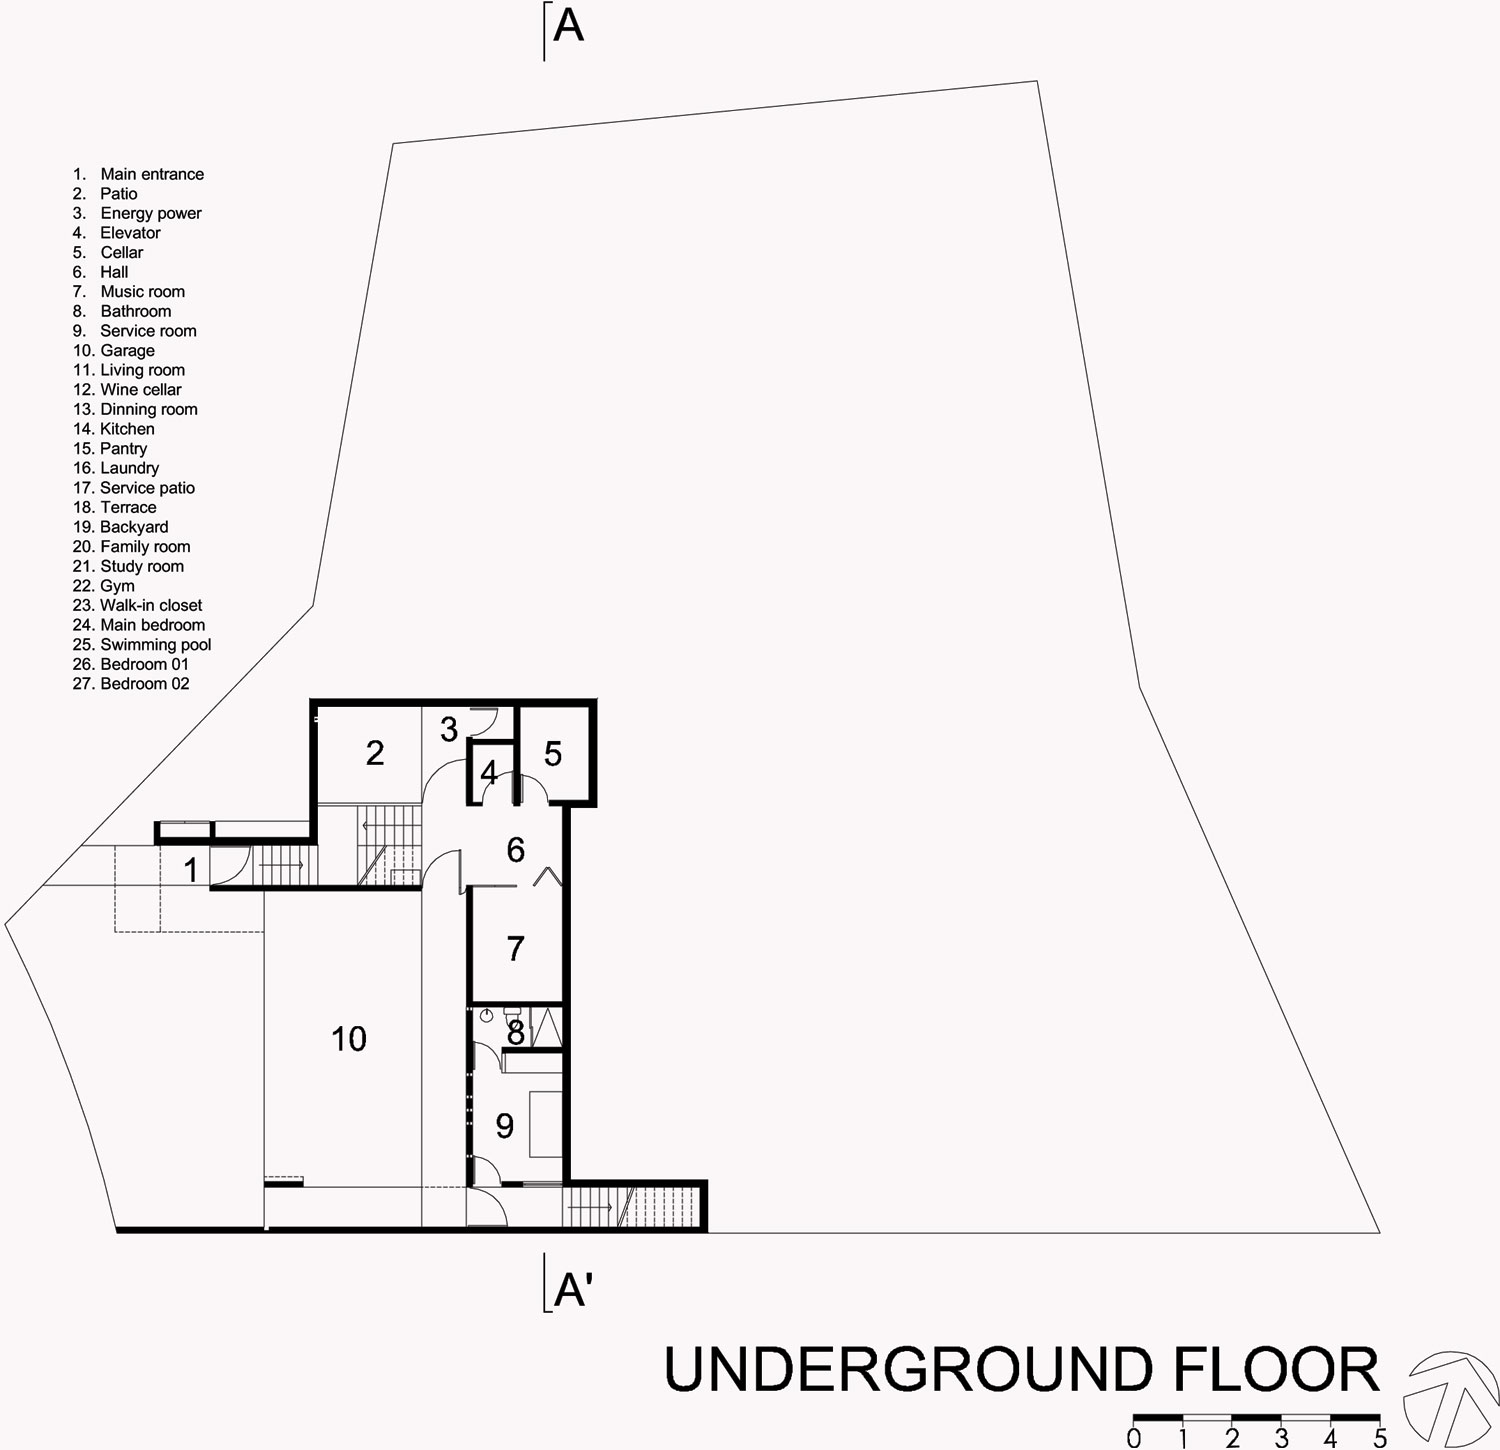 awesome underground house design plans images best image 3d home mountain house underground interior design ideas